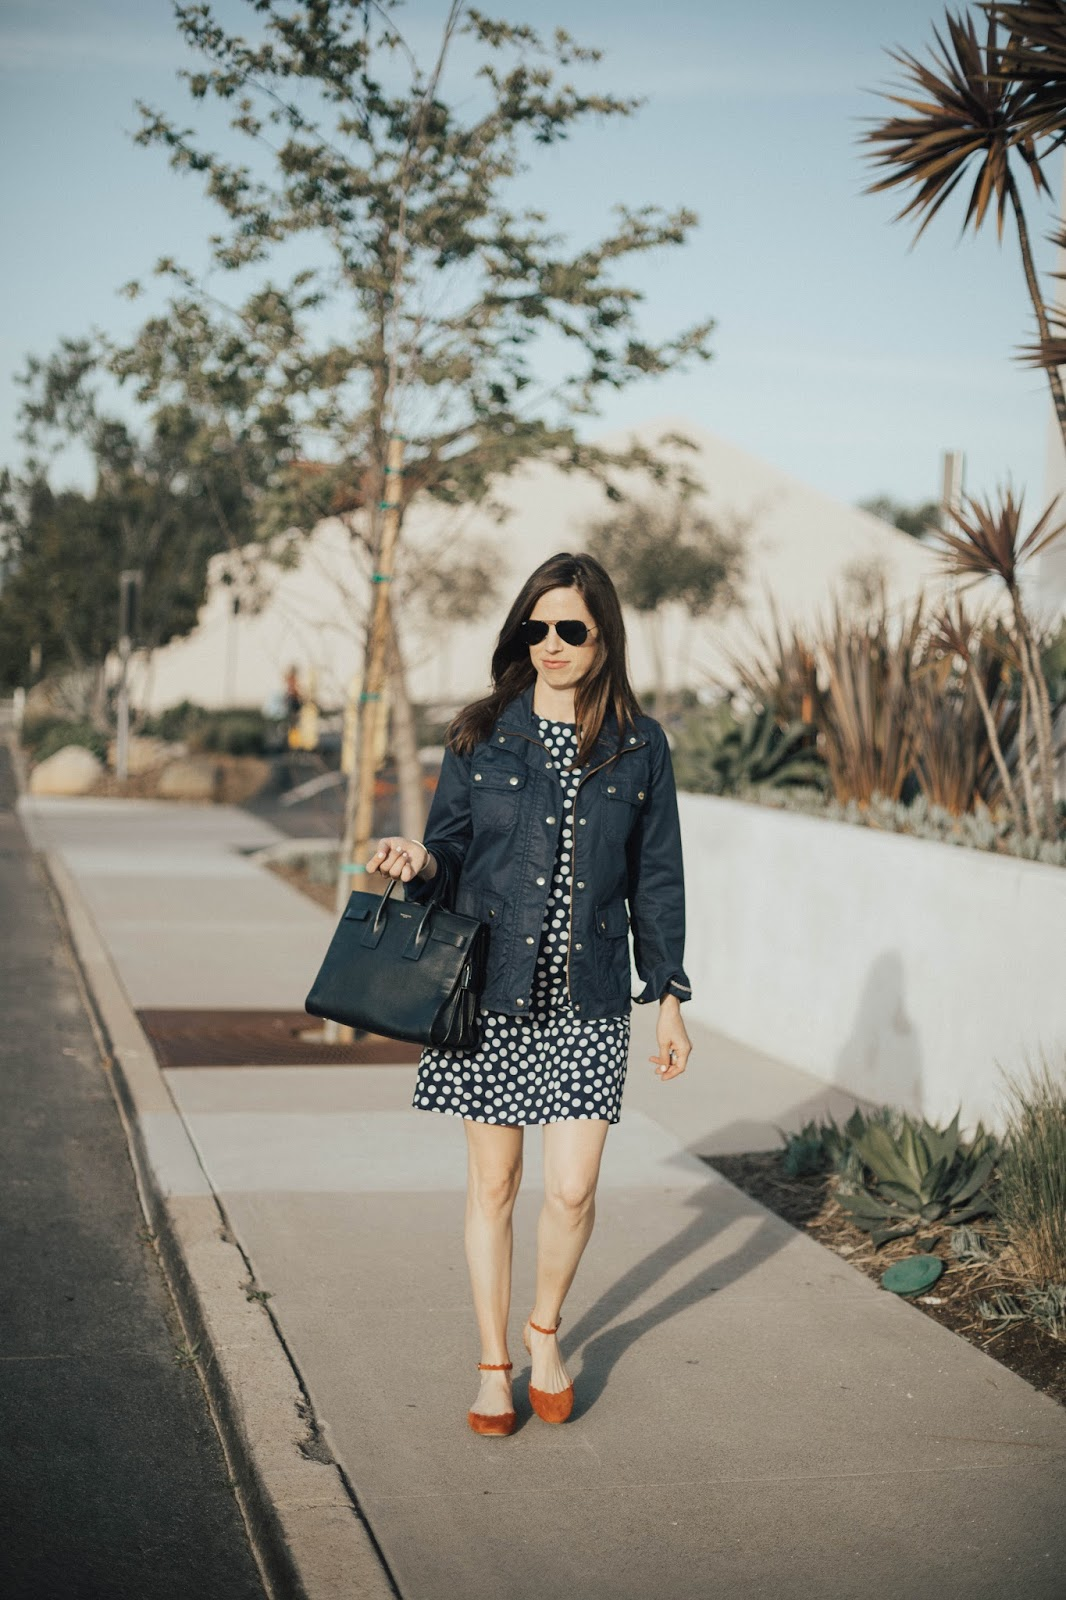 navy polkadot dress outfit